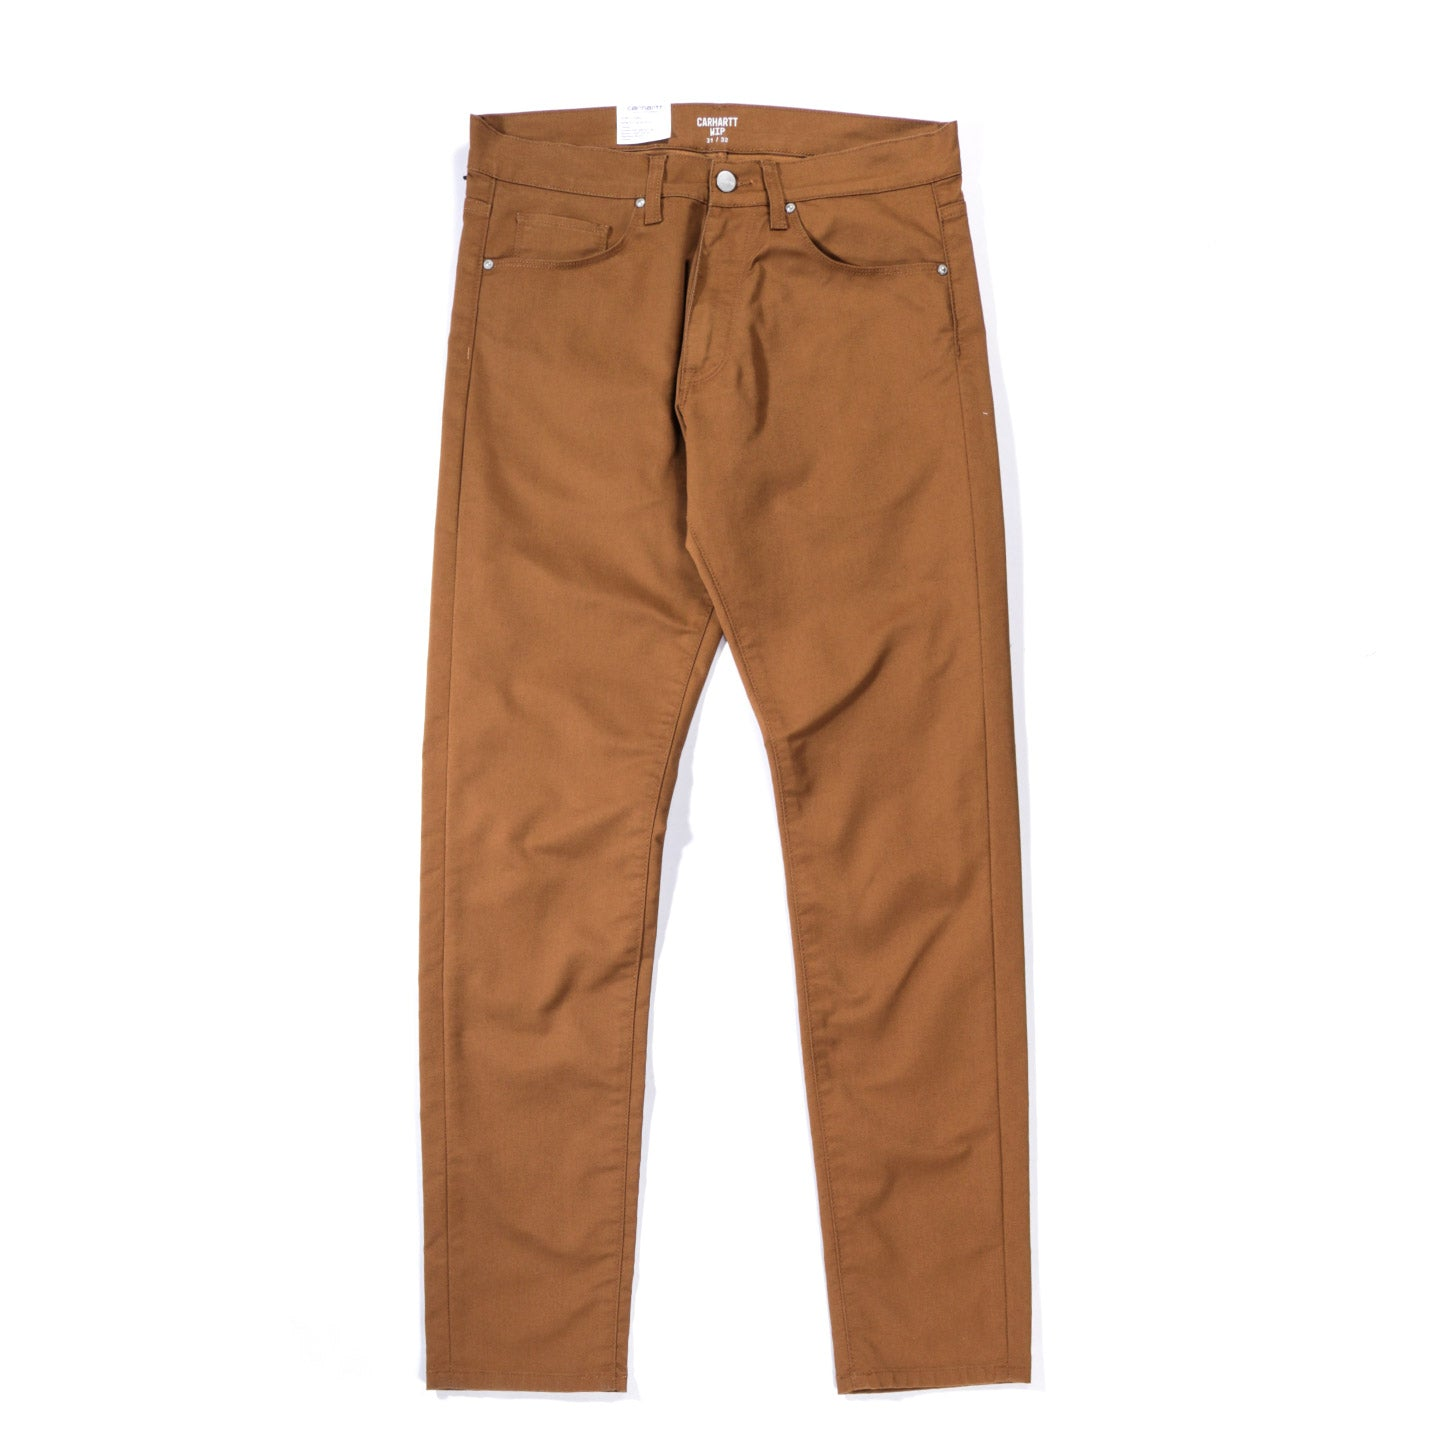 CARHARTT WIP VICIOUS PANT 'LAMAR' STRETCH TWILL HAMILTON BROWN